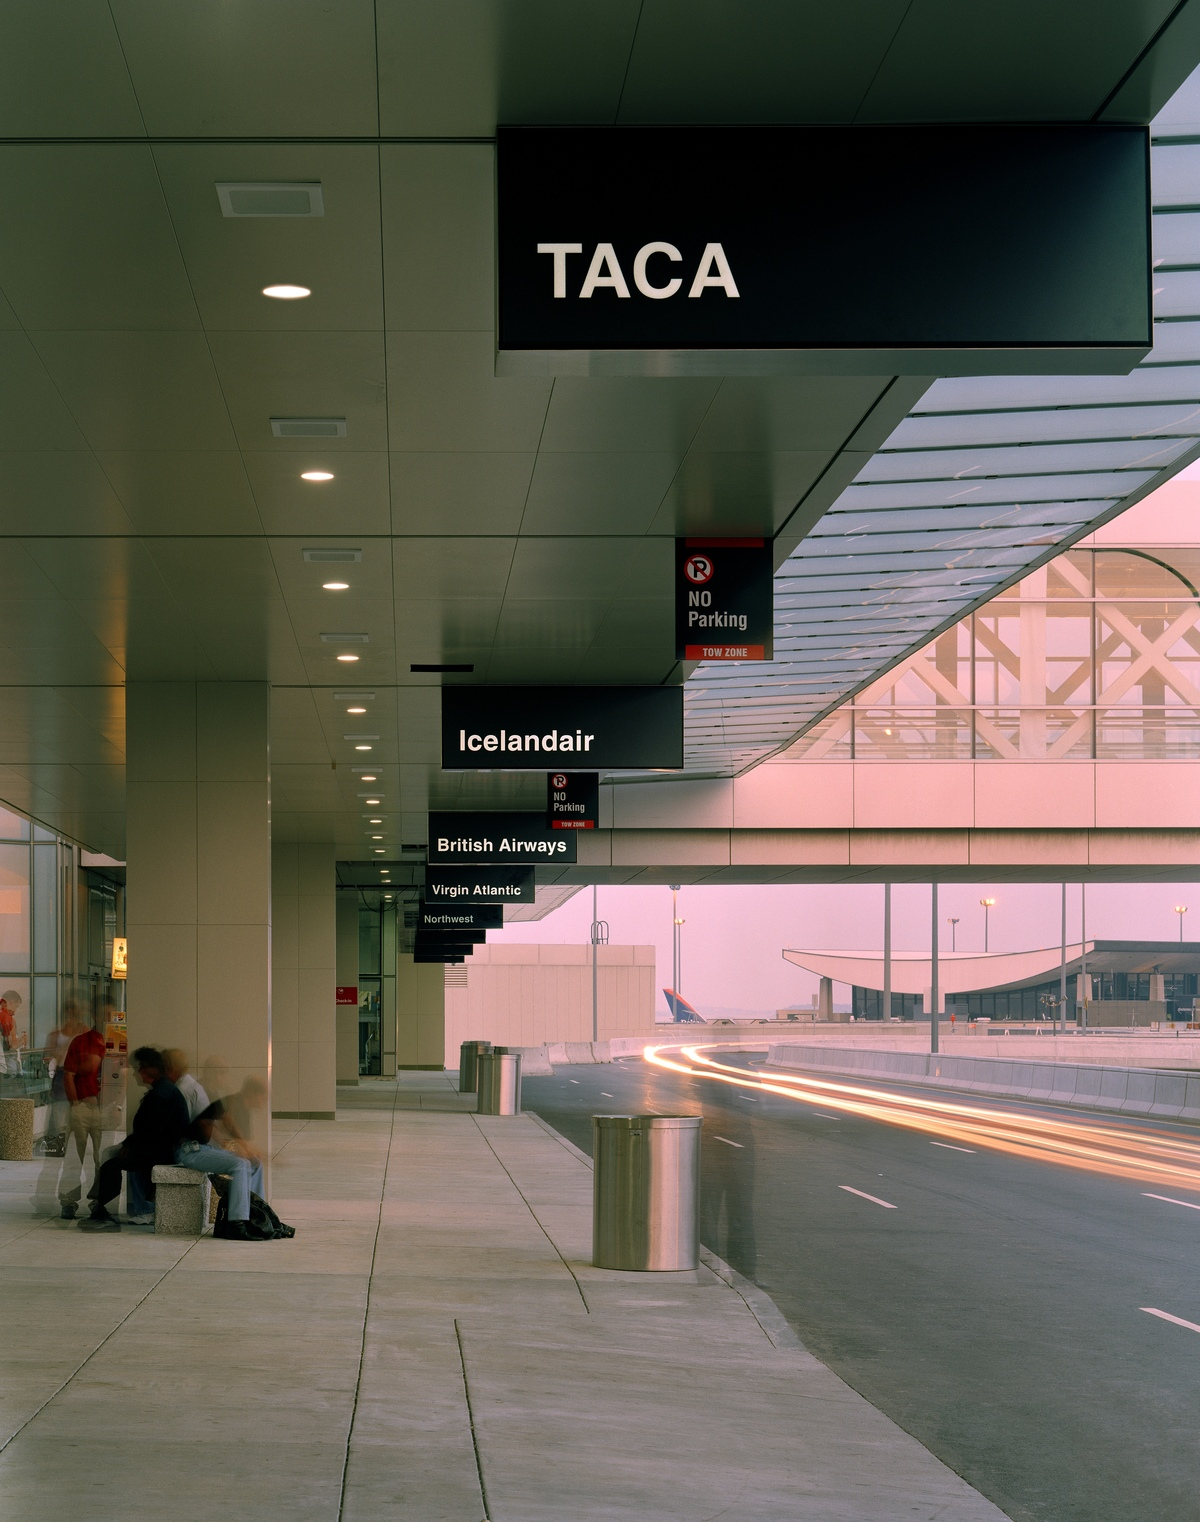 Project image 6 for Terminal E Signage, Logan International Airport